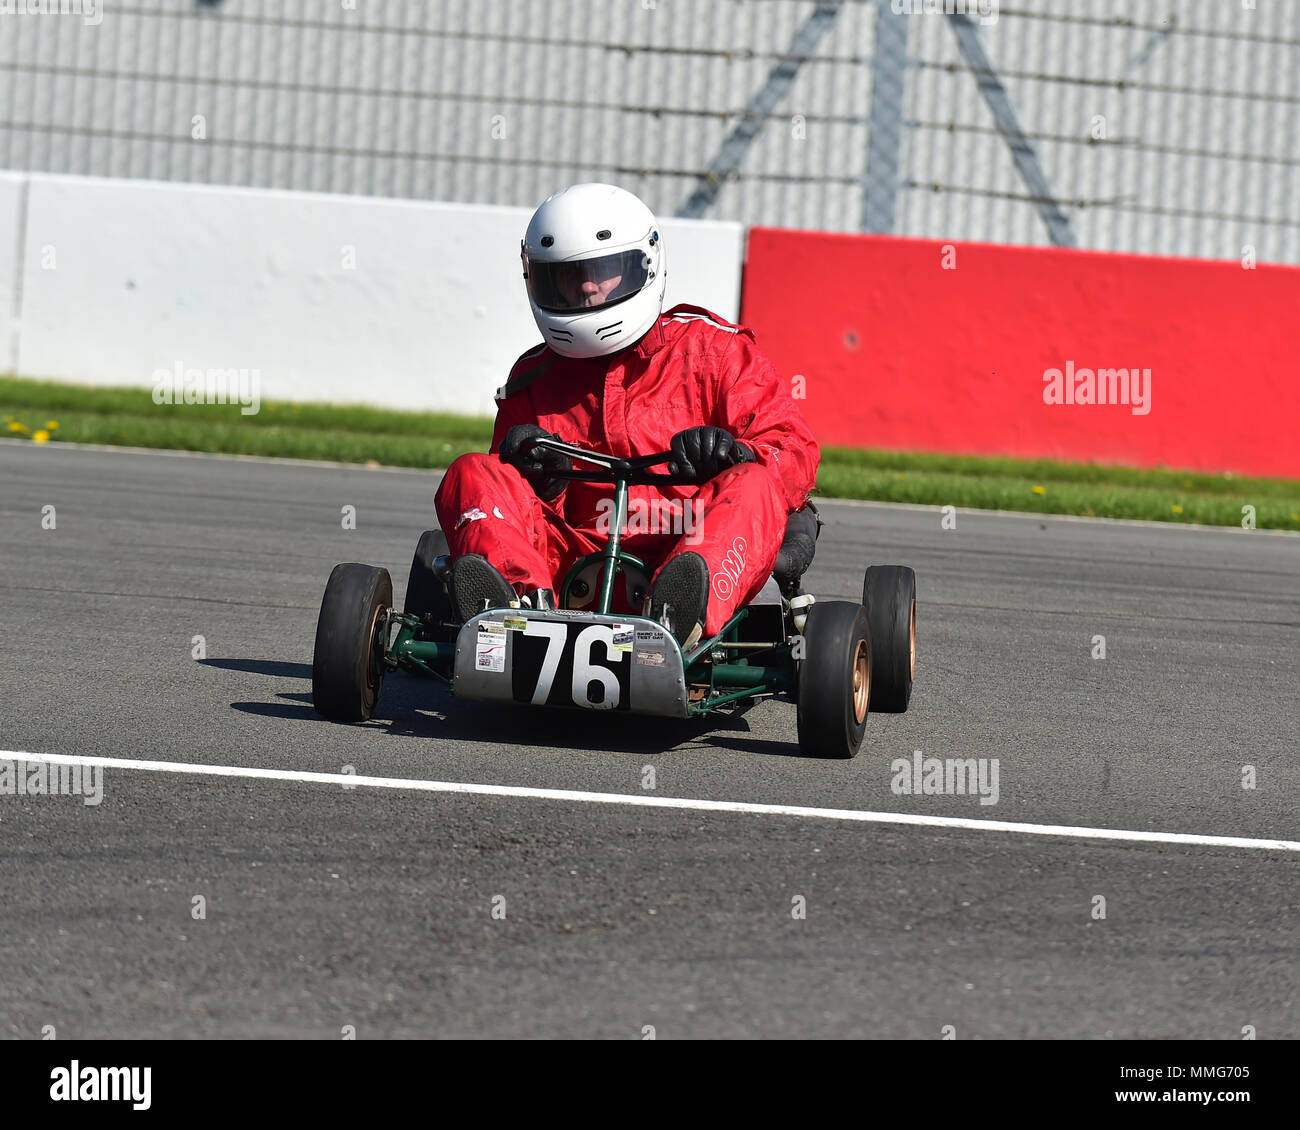 Car Stock Photos: Buckler Car Stock Photos & Buckler Car Stock Images